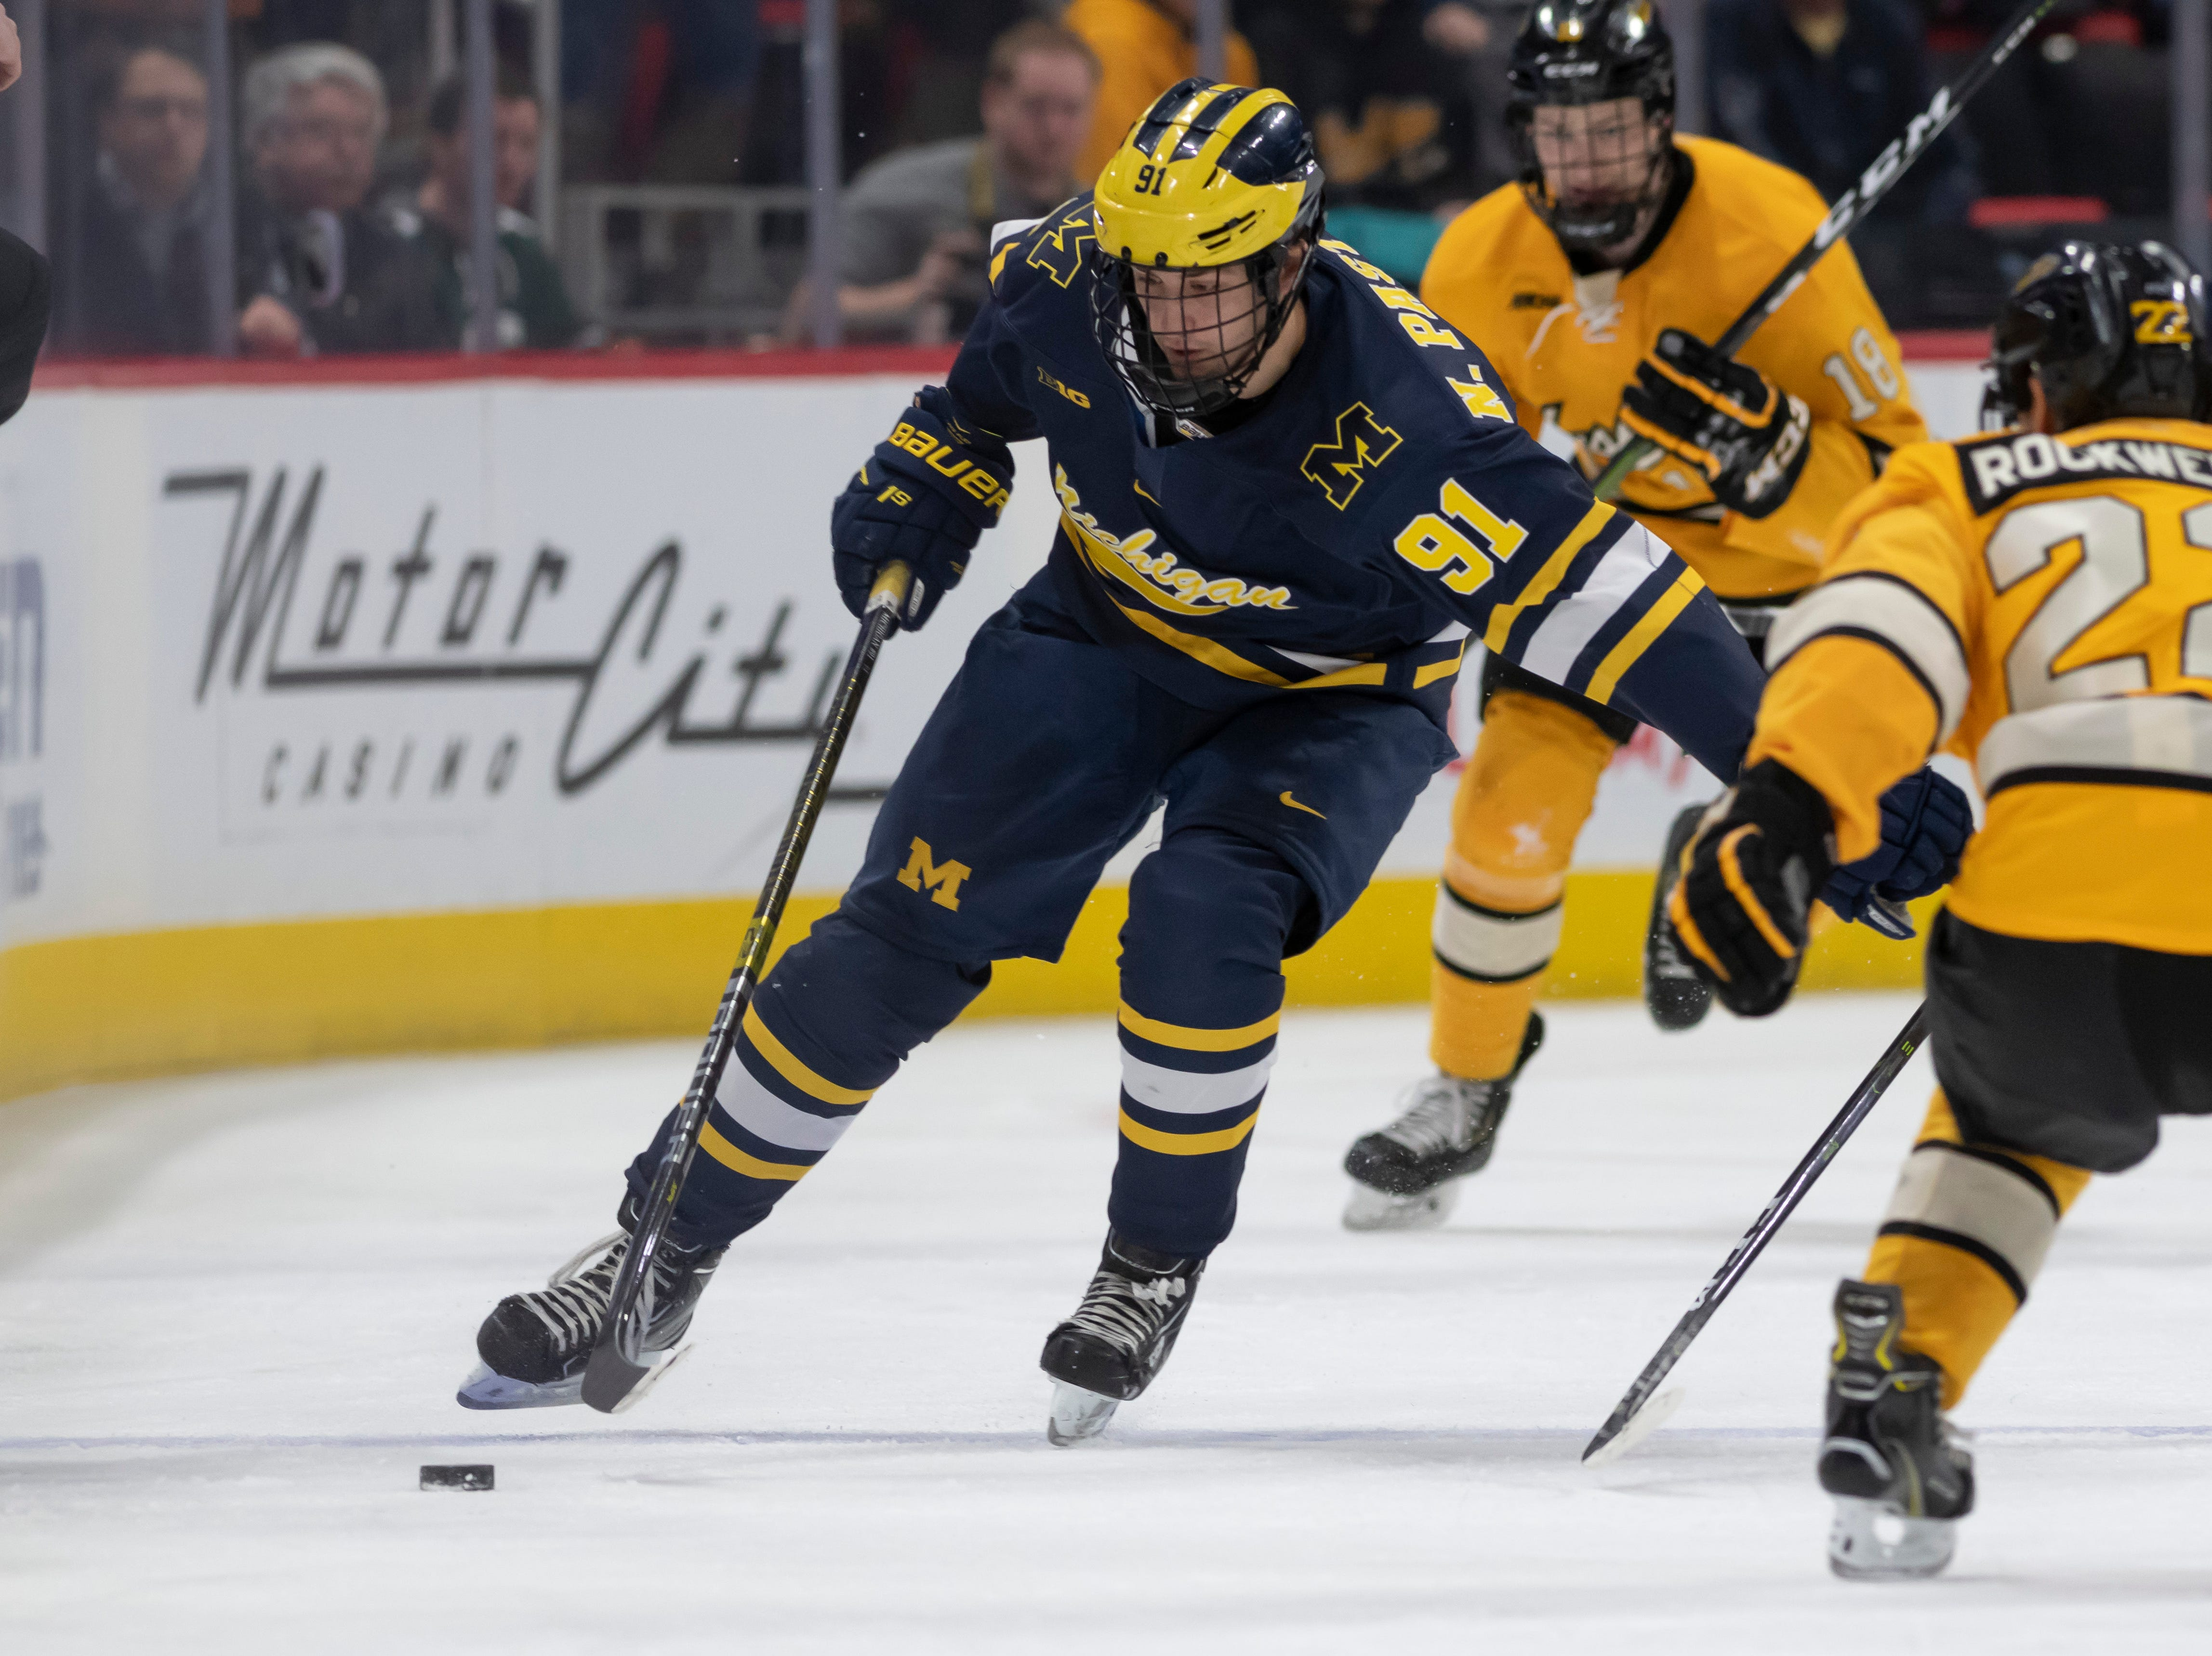 Michigan forward Nick Pastujov moves the puck up the ice in the second period.